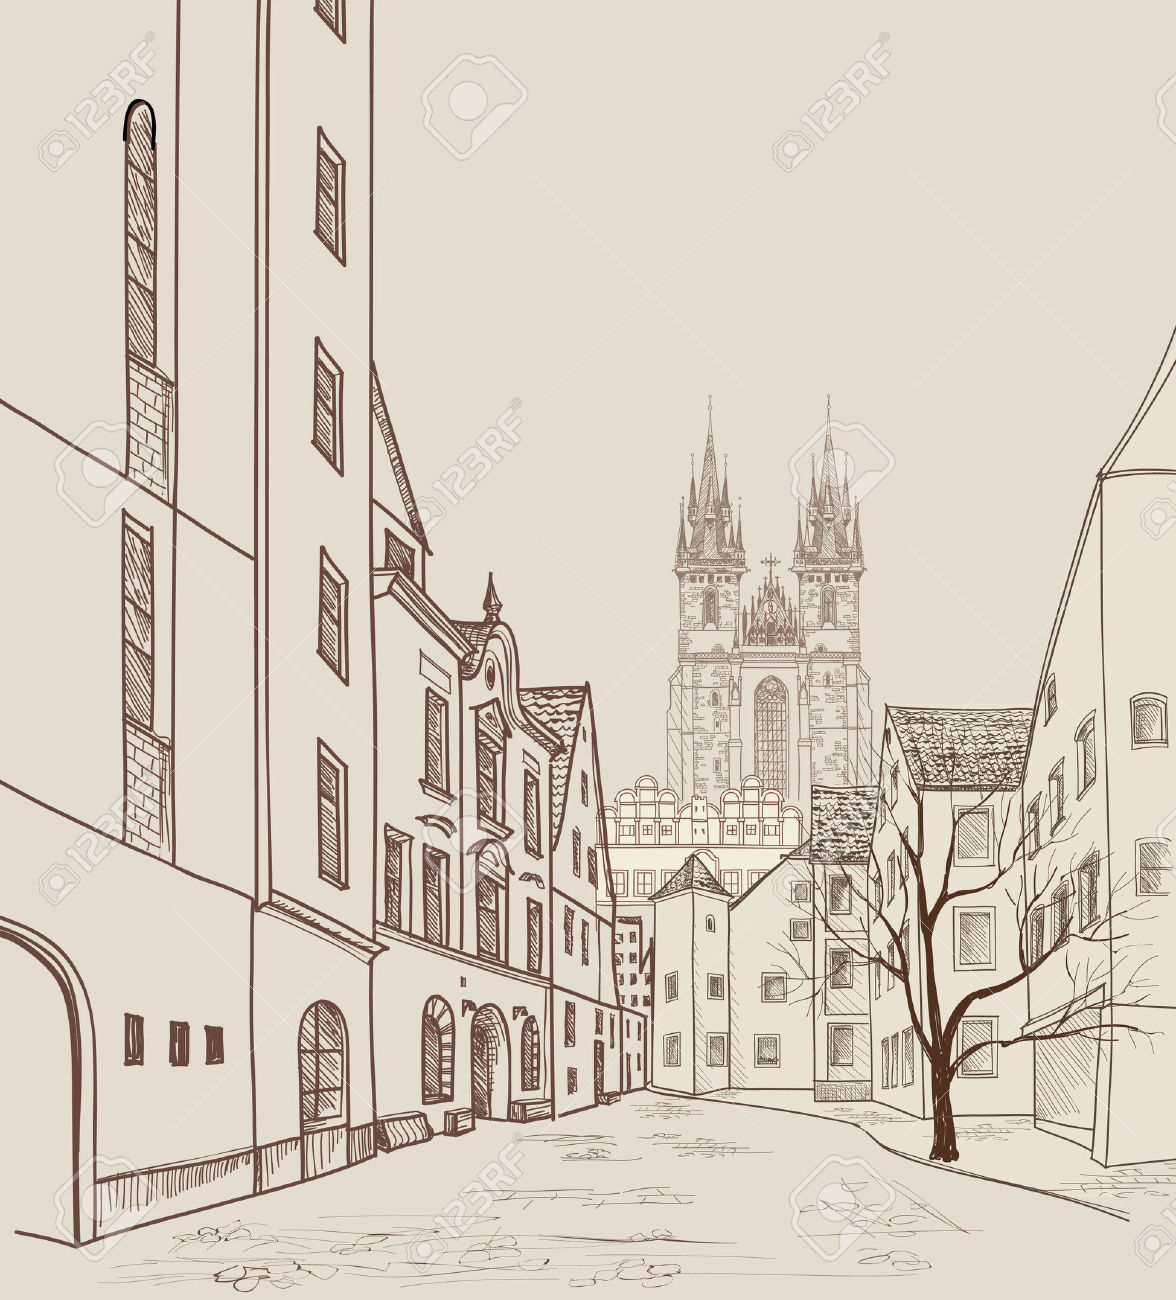 365 Prague Castle Stock Vector Illustration And Royalty Free.